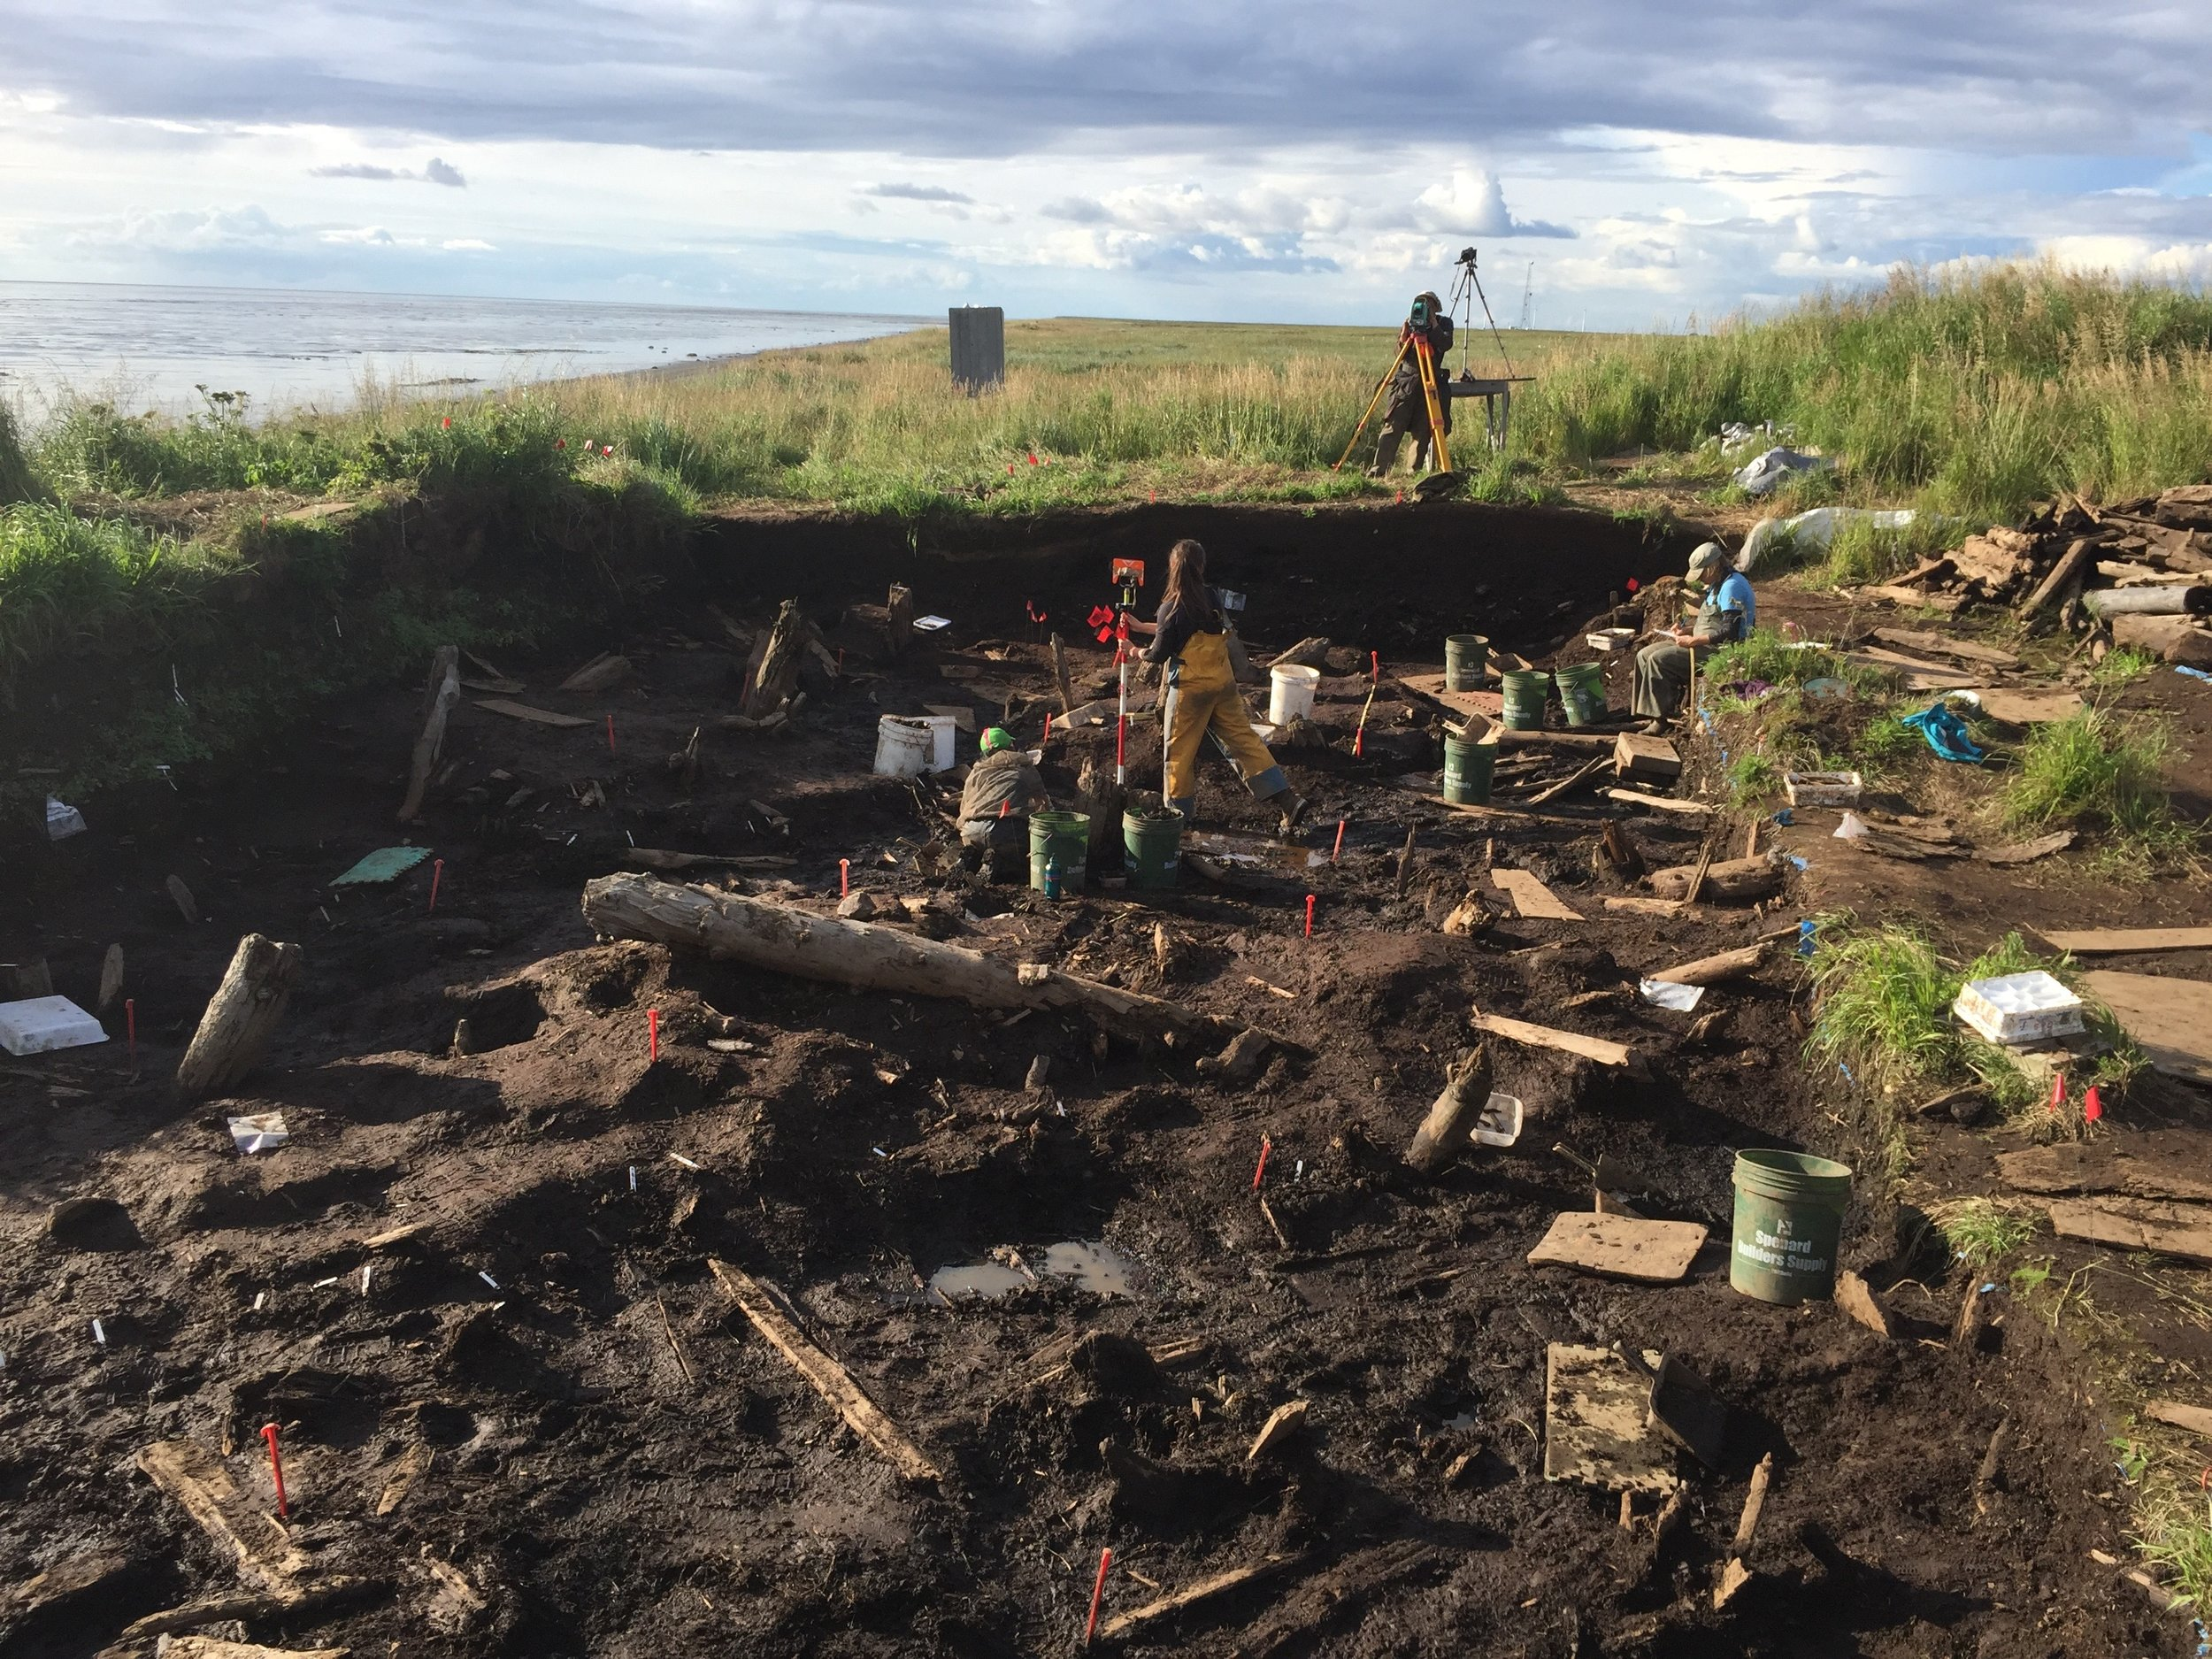 The dig site at the end of the day as items are being tracked with the survey equipment.